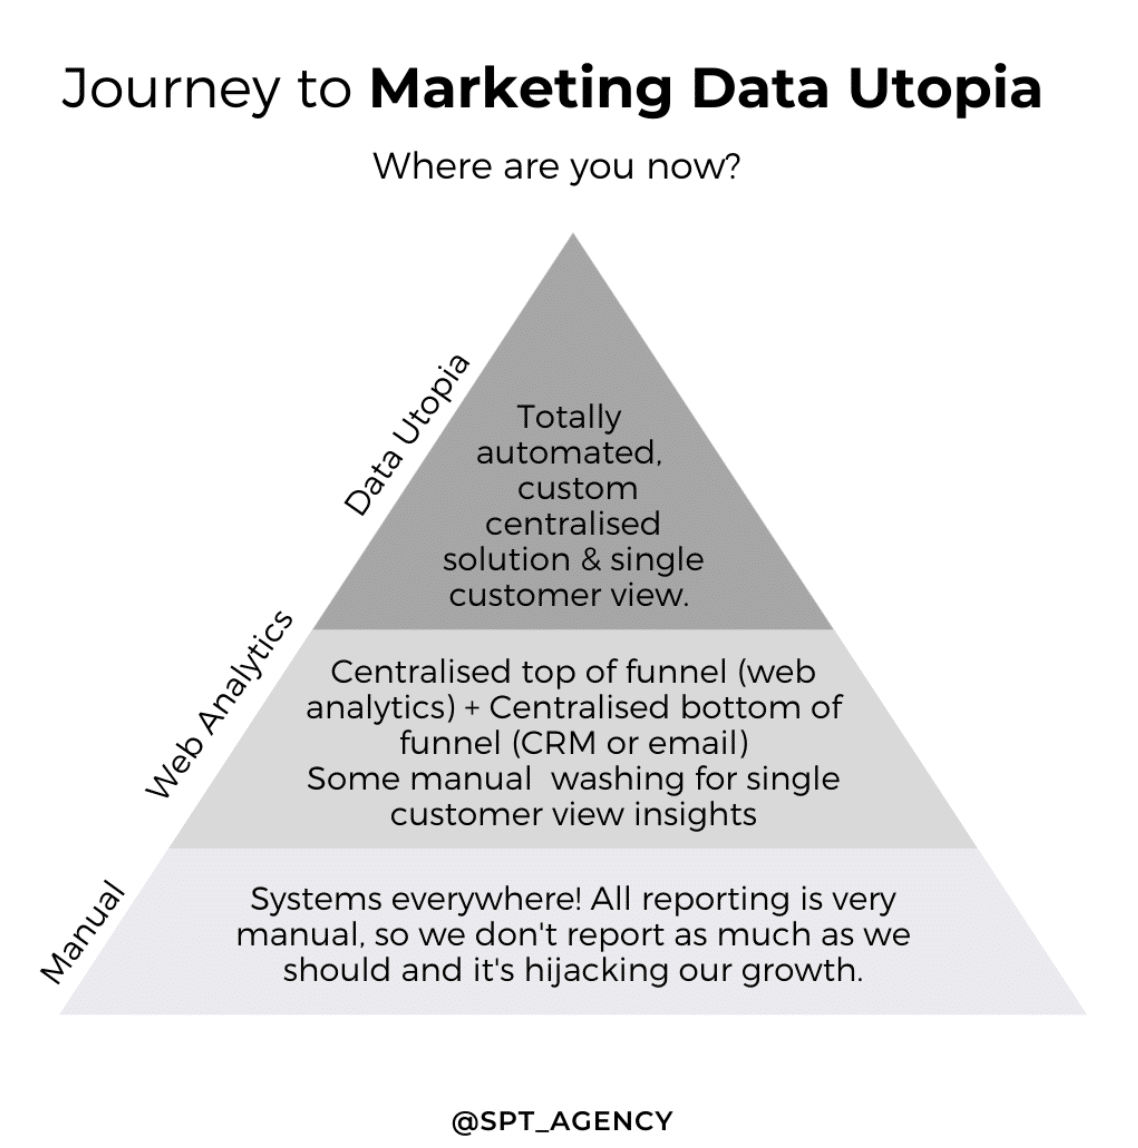 Journey to marketing data utopia